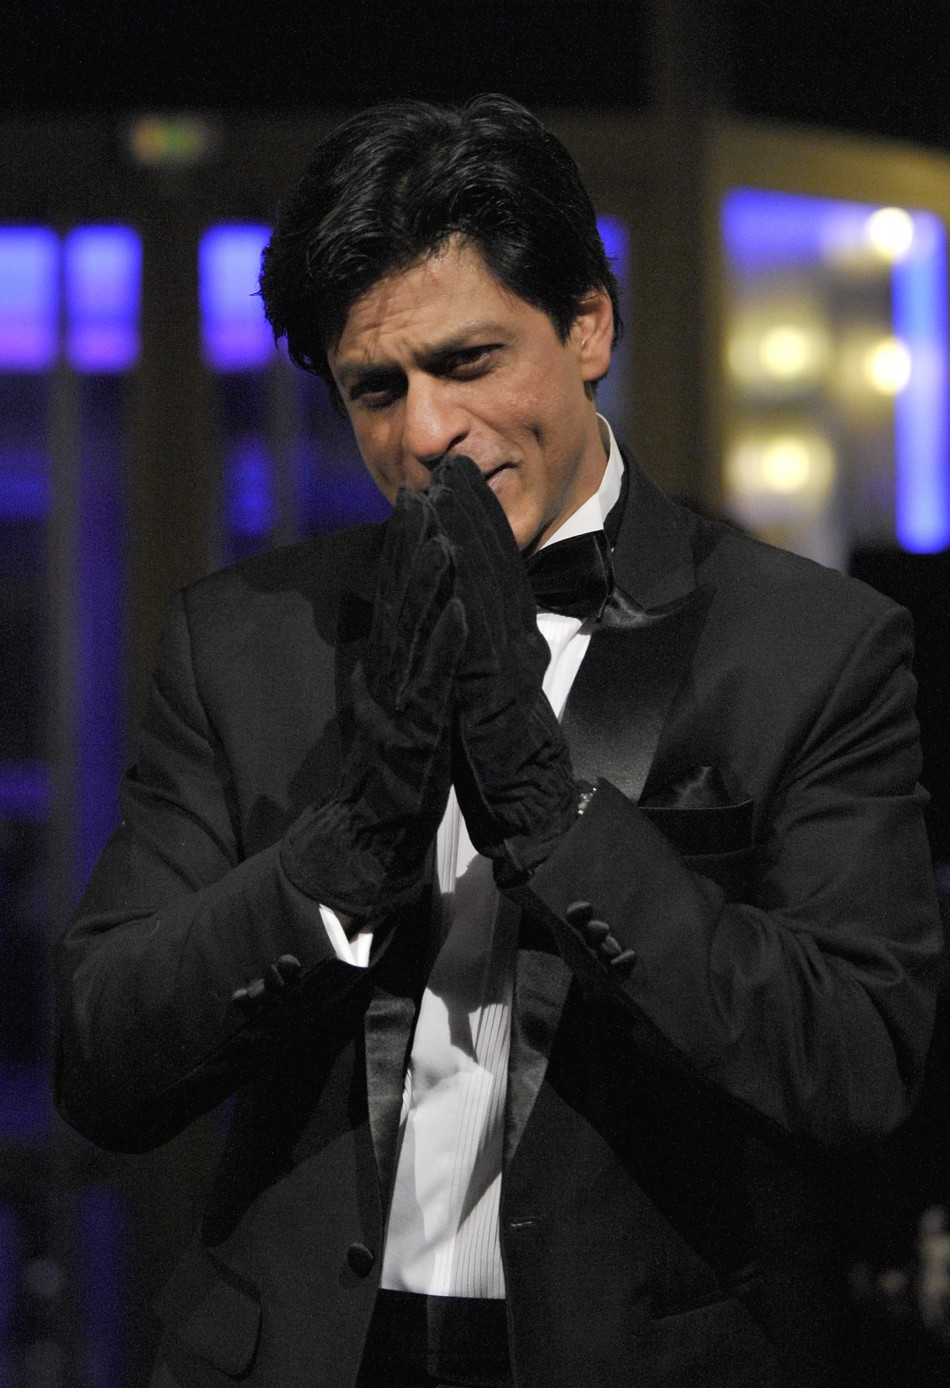 Shah Rukh Speaks on Salman: Our Relation is no more based on Competition, we have Grown Up